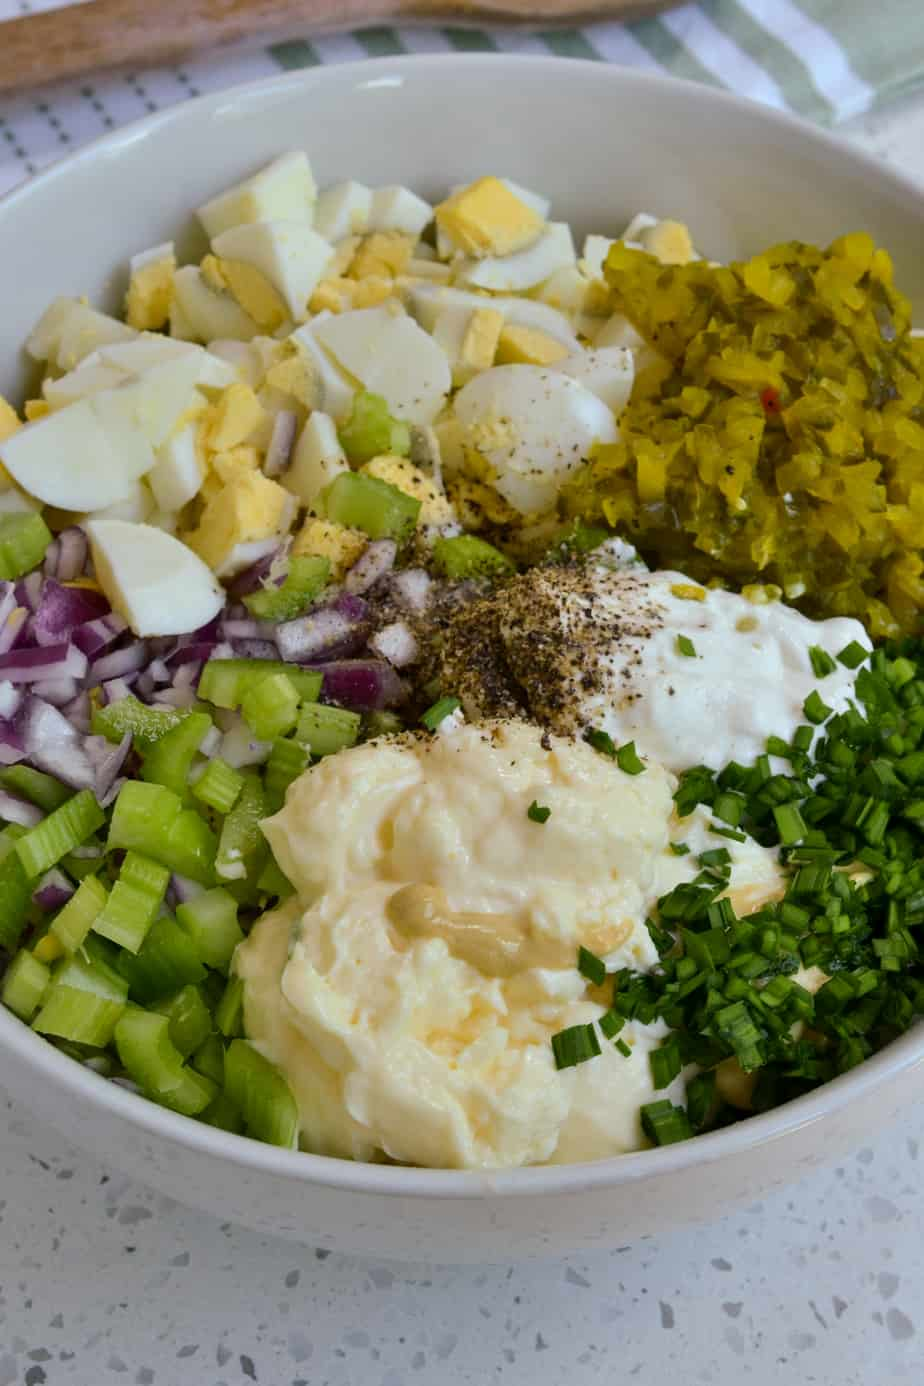 Potatoes, mayonnaise, mustard, celery, red onion, hard boiled eggs, pickle relish and chives in a bowl.